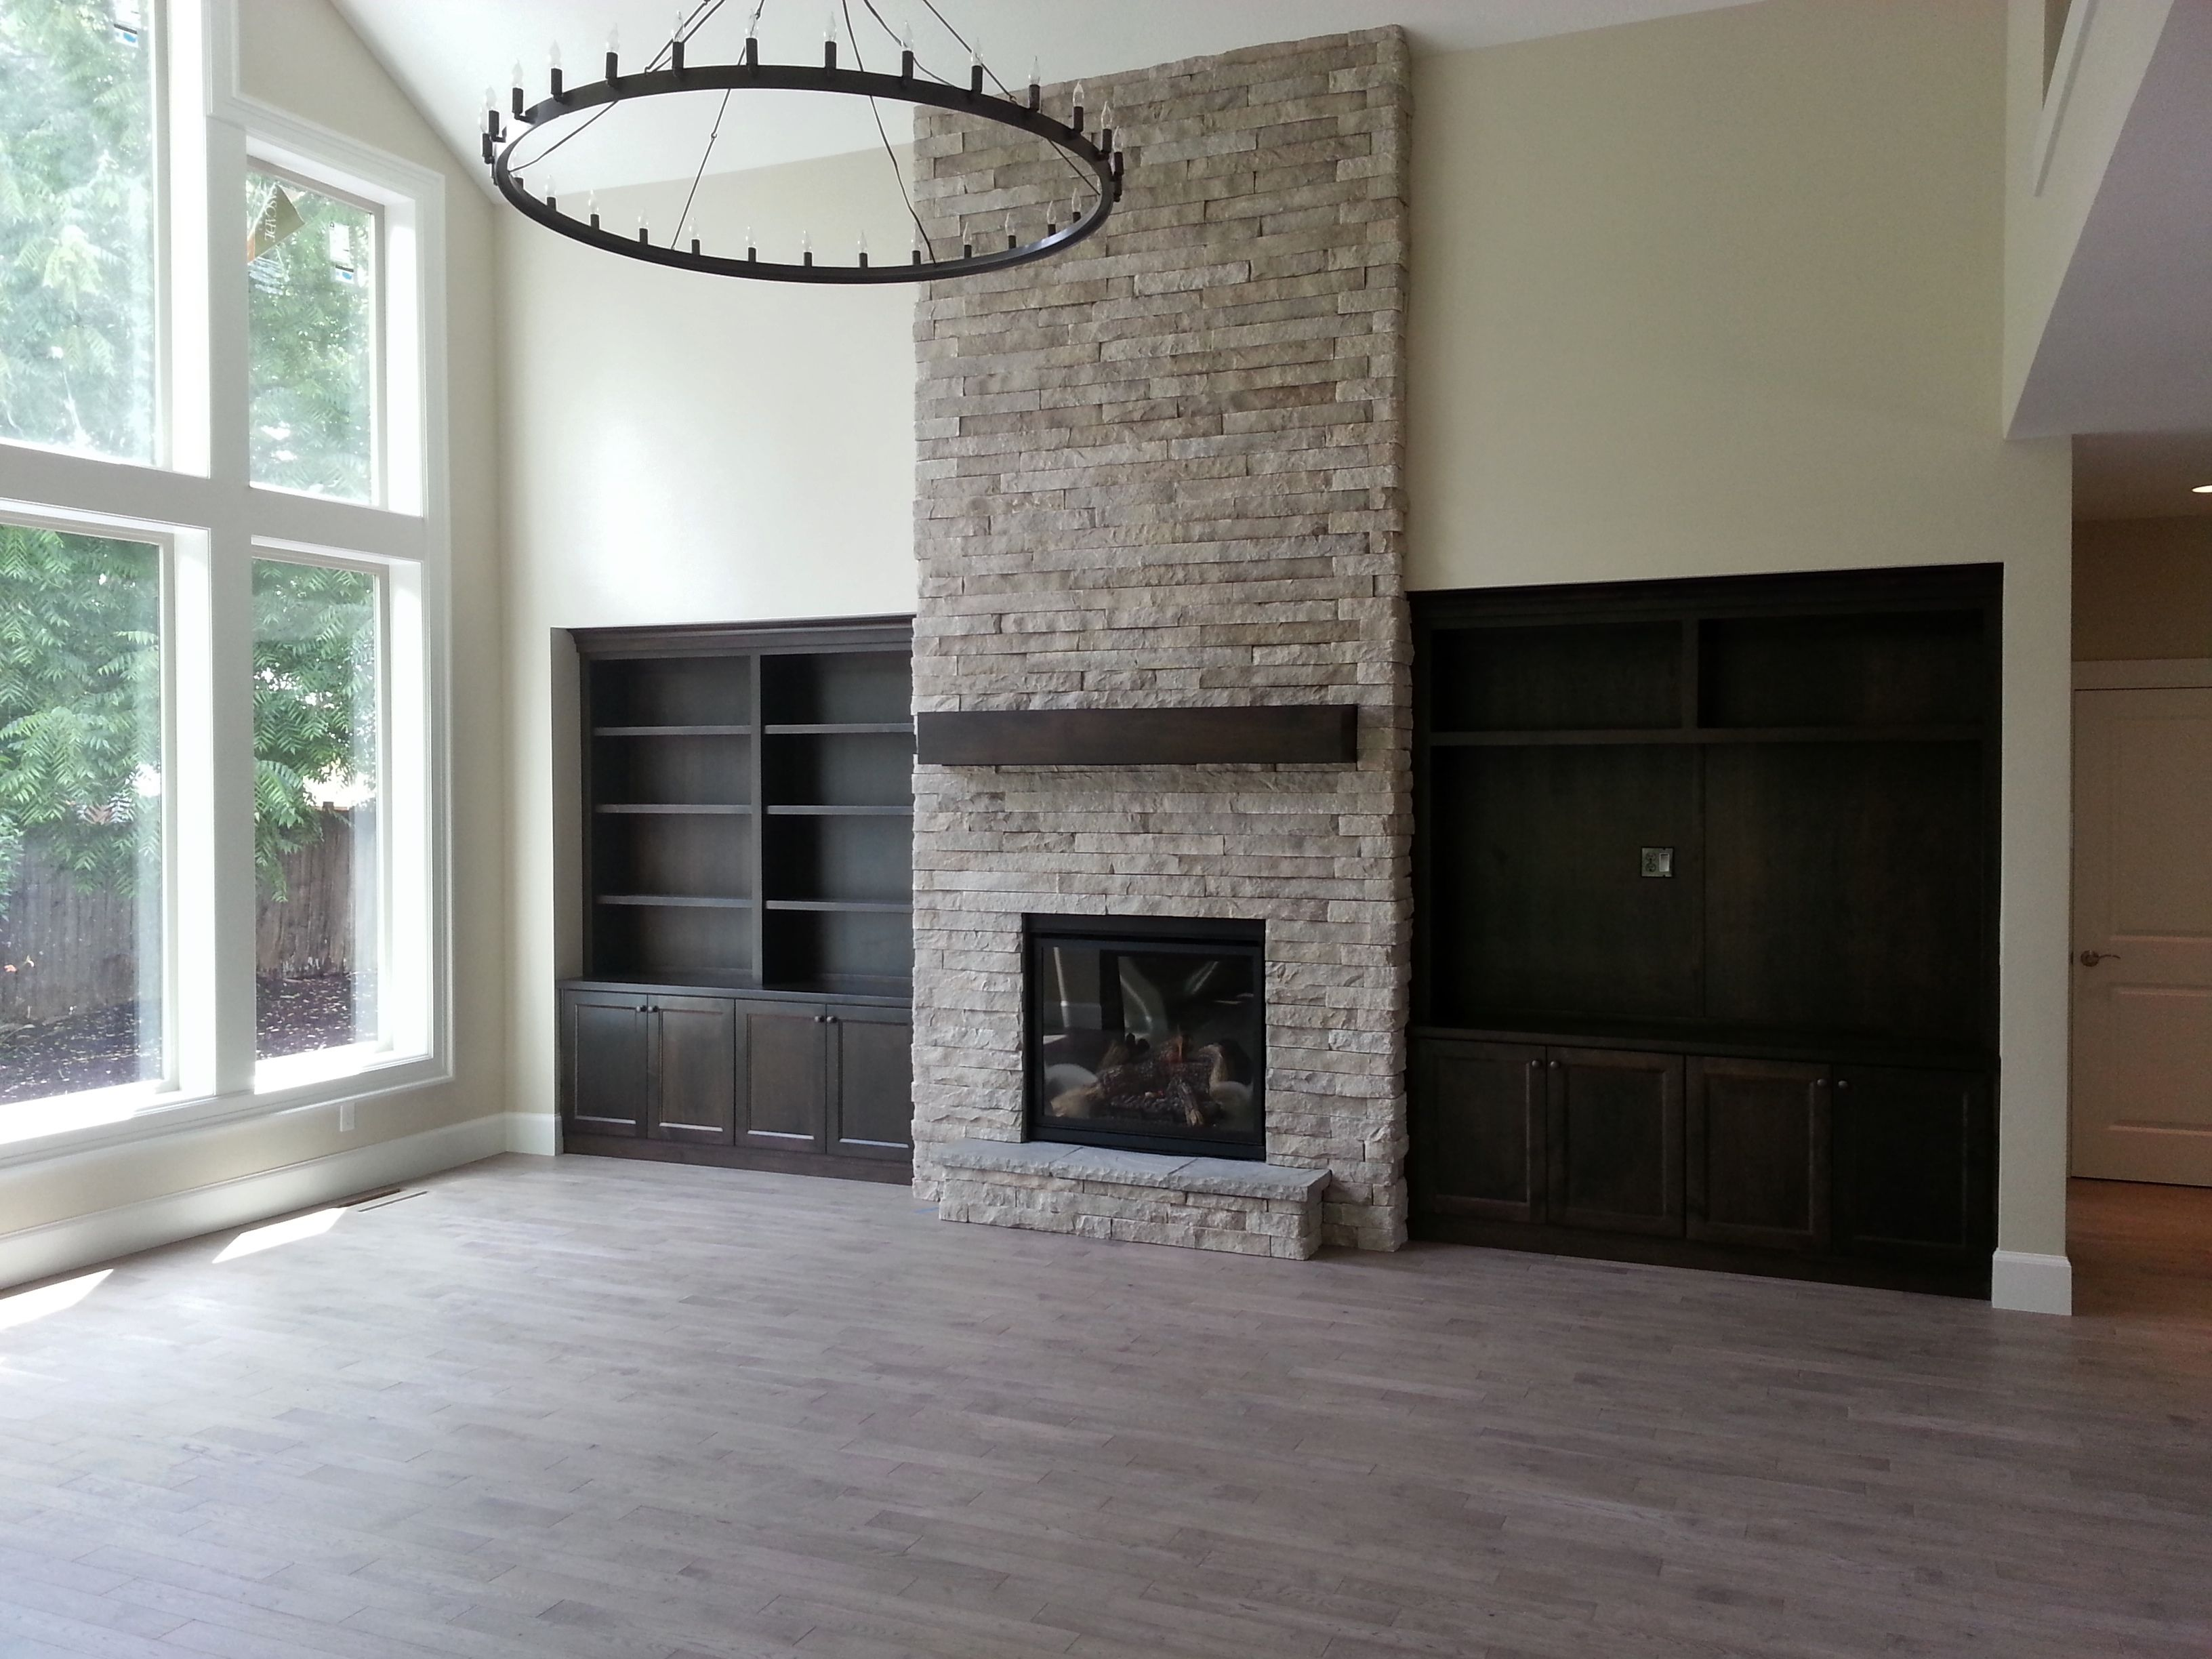 fireplace indoor fireplace stone to ceiling gas fireplace